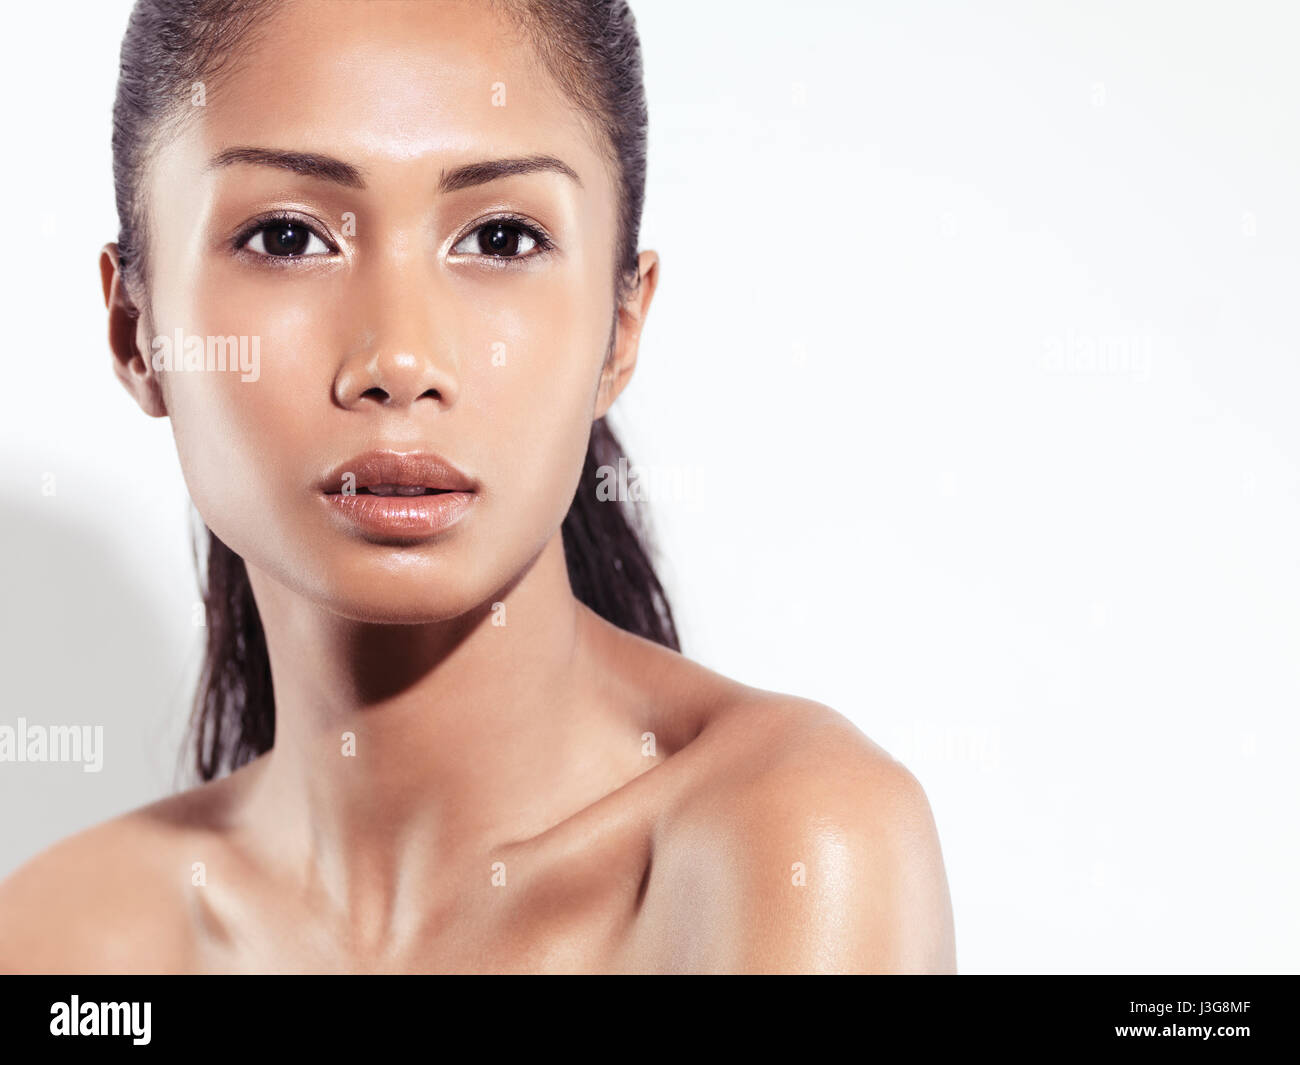 Closeup beauty portrait of an attractive young woman beautiful exotic asian face with healthy natural look isolated on white background Stock Photo